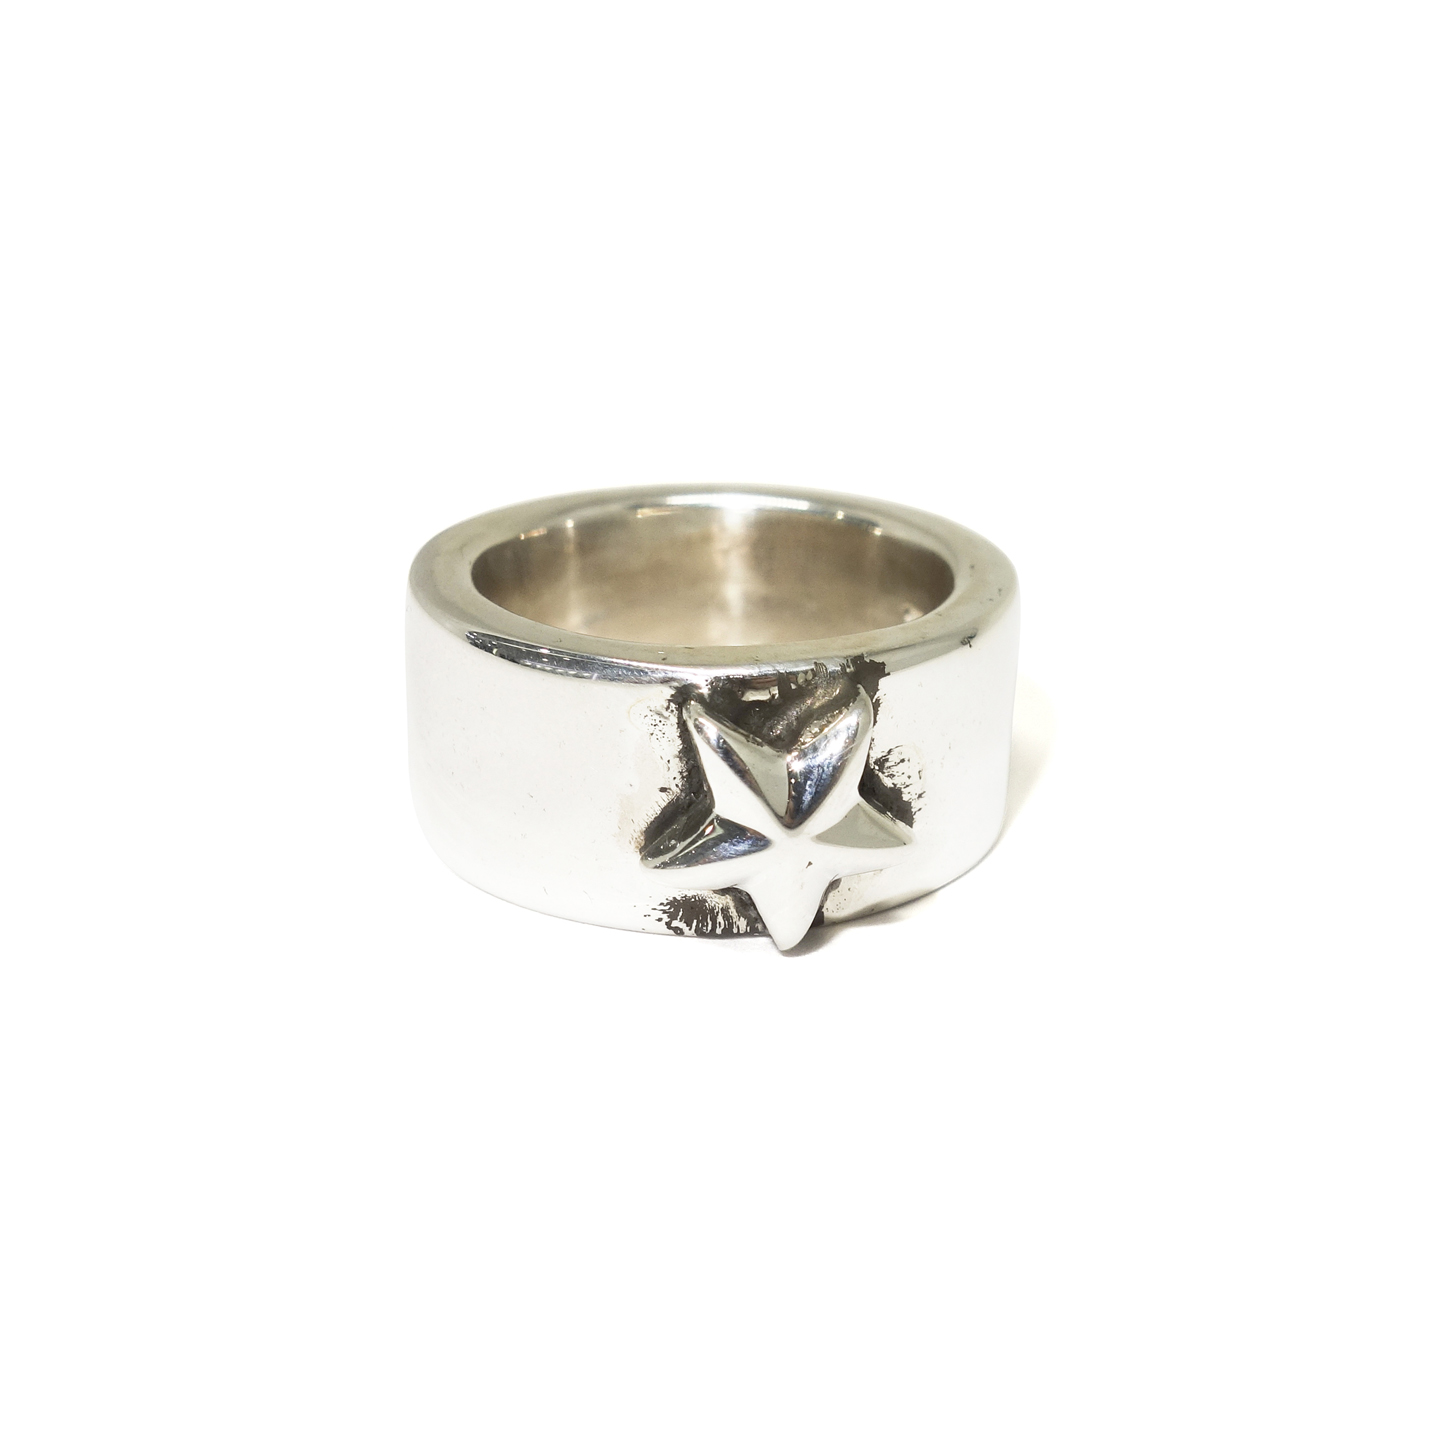 comparison star and thick rings adjustable unique silver rock silversmiths backyard ring by chunky products